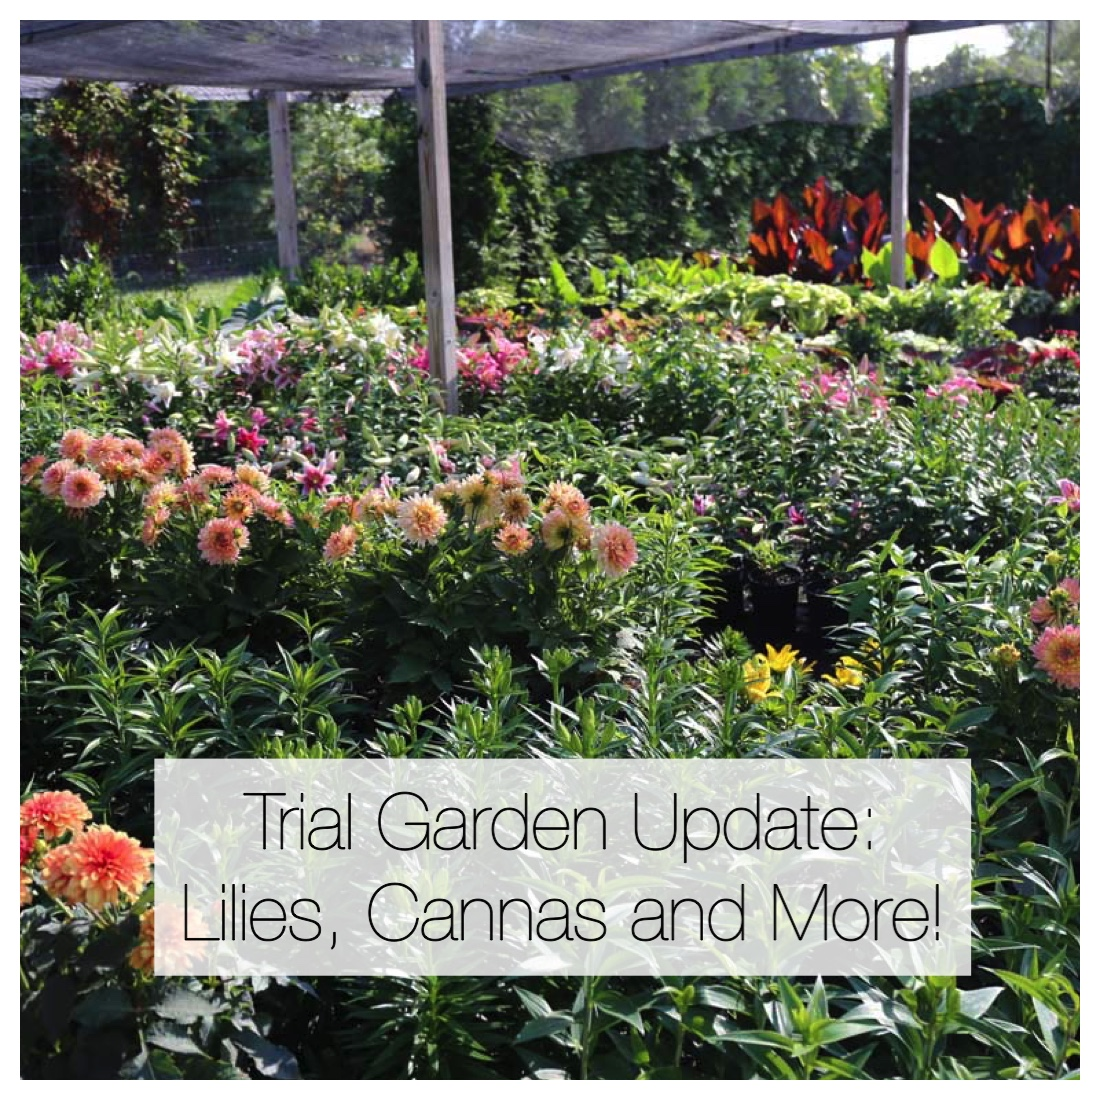 A Midsummer Tour of Our Trial Garden